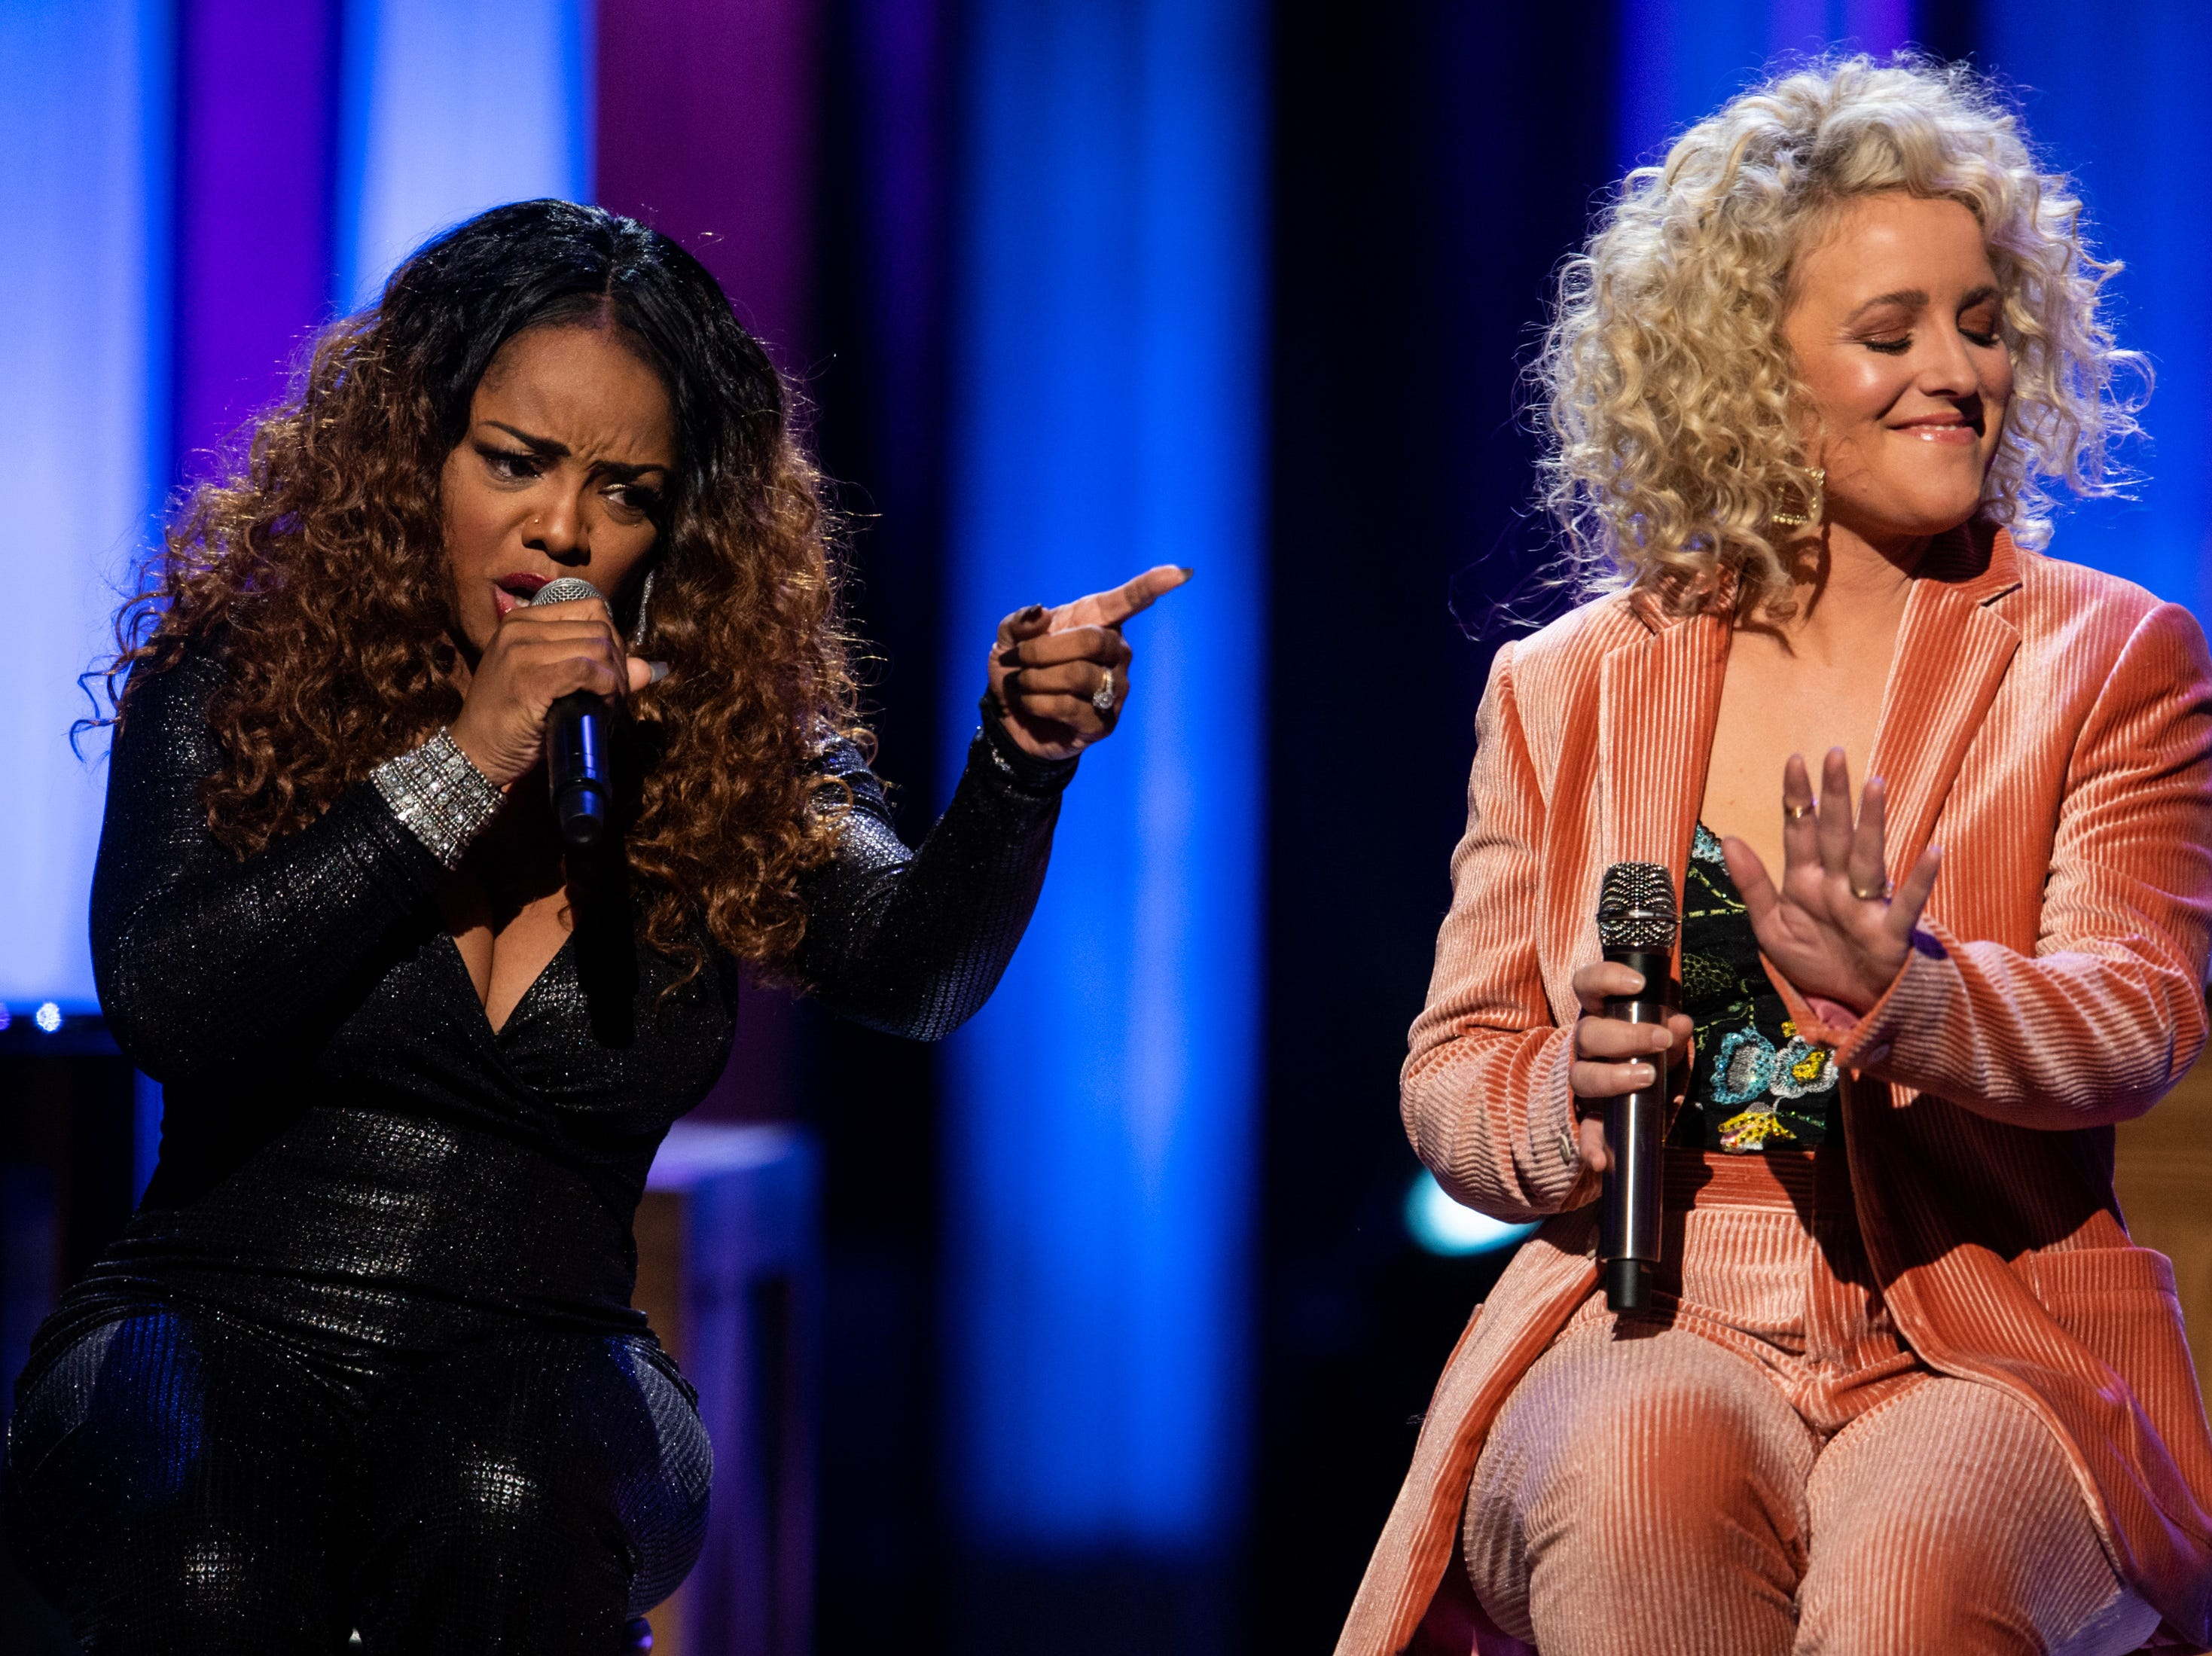 Leela James, left, and Cam, right, perform during the An Opry Salute to Ray Charles concert at The Grand Ole Opry in Nashville, Tenn., Monday, Oct. 8, 2018.